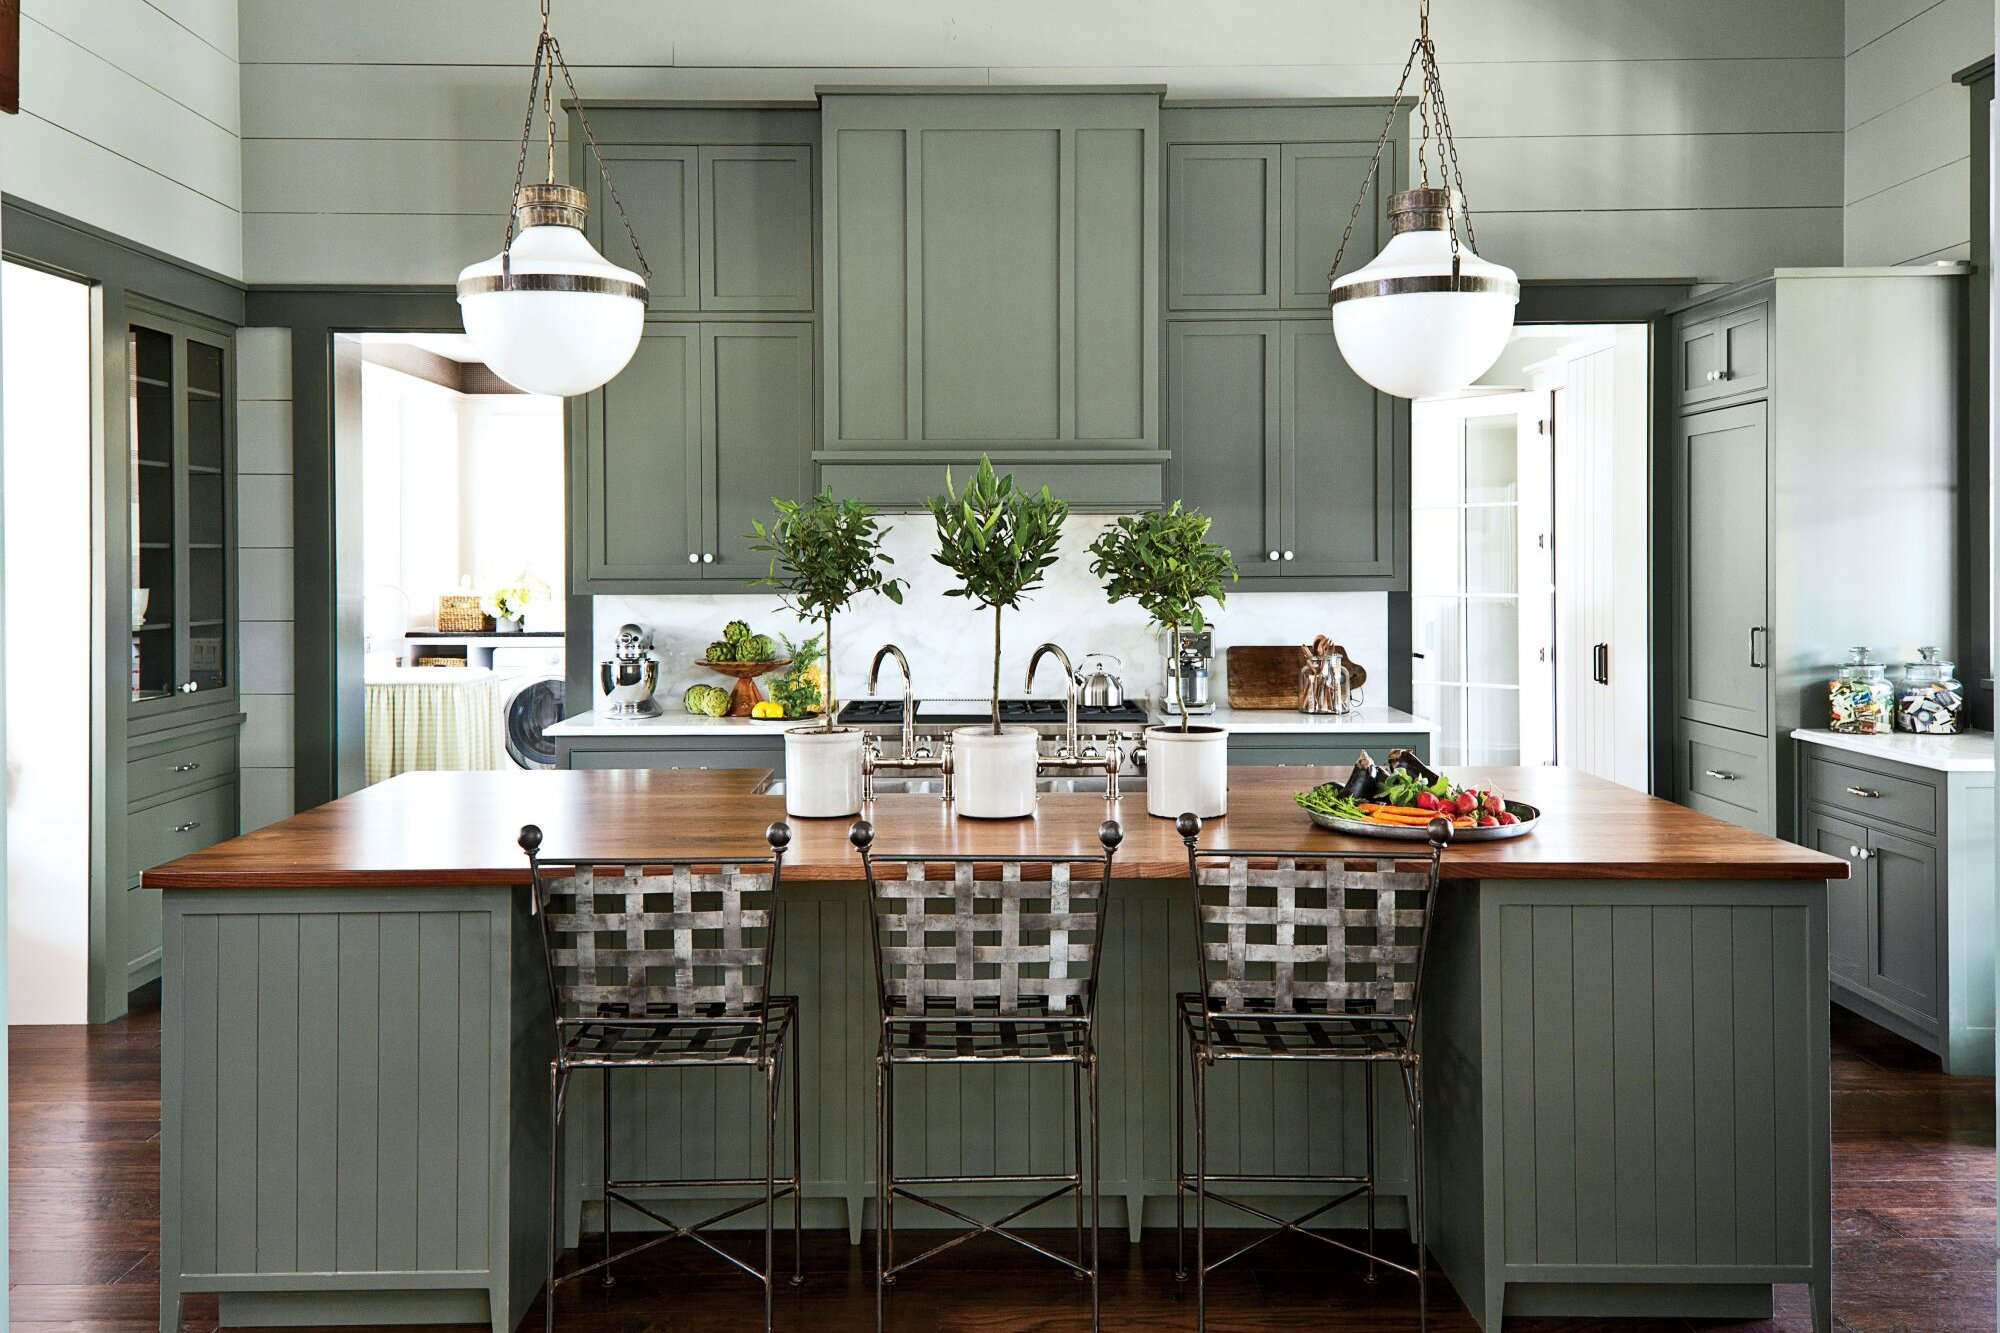 7 Paint Colors We Iacute Re Loving For Kitchen Cabinets In 2020 Southern Living